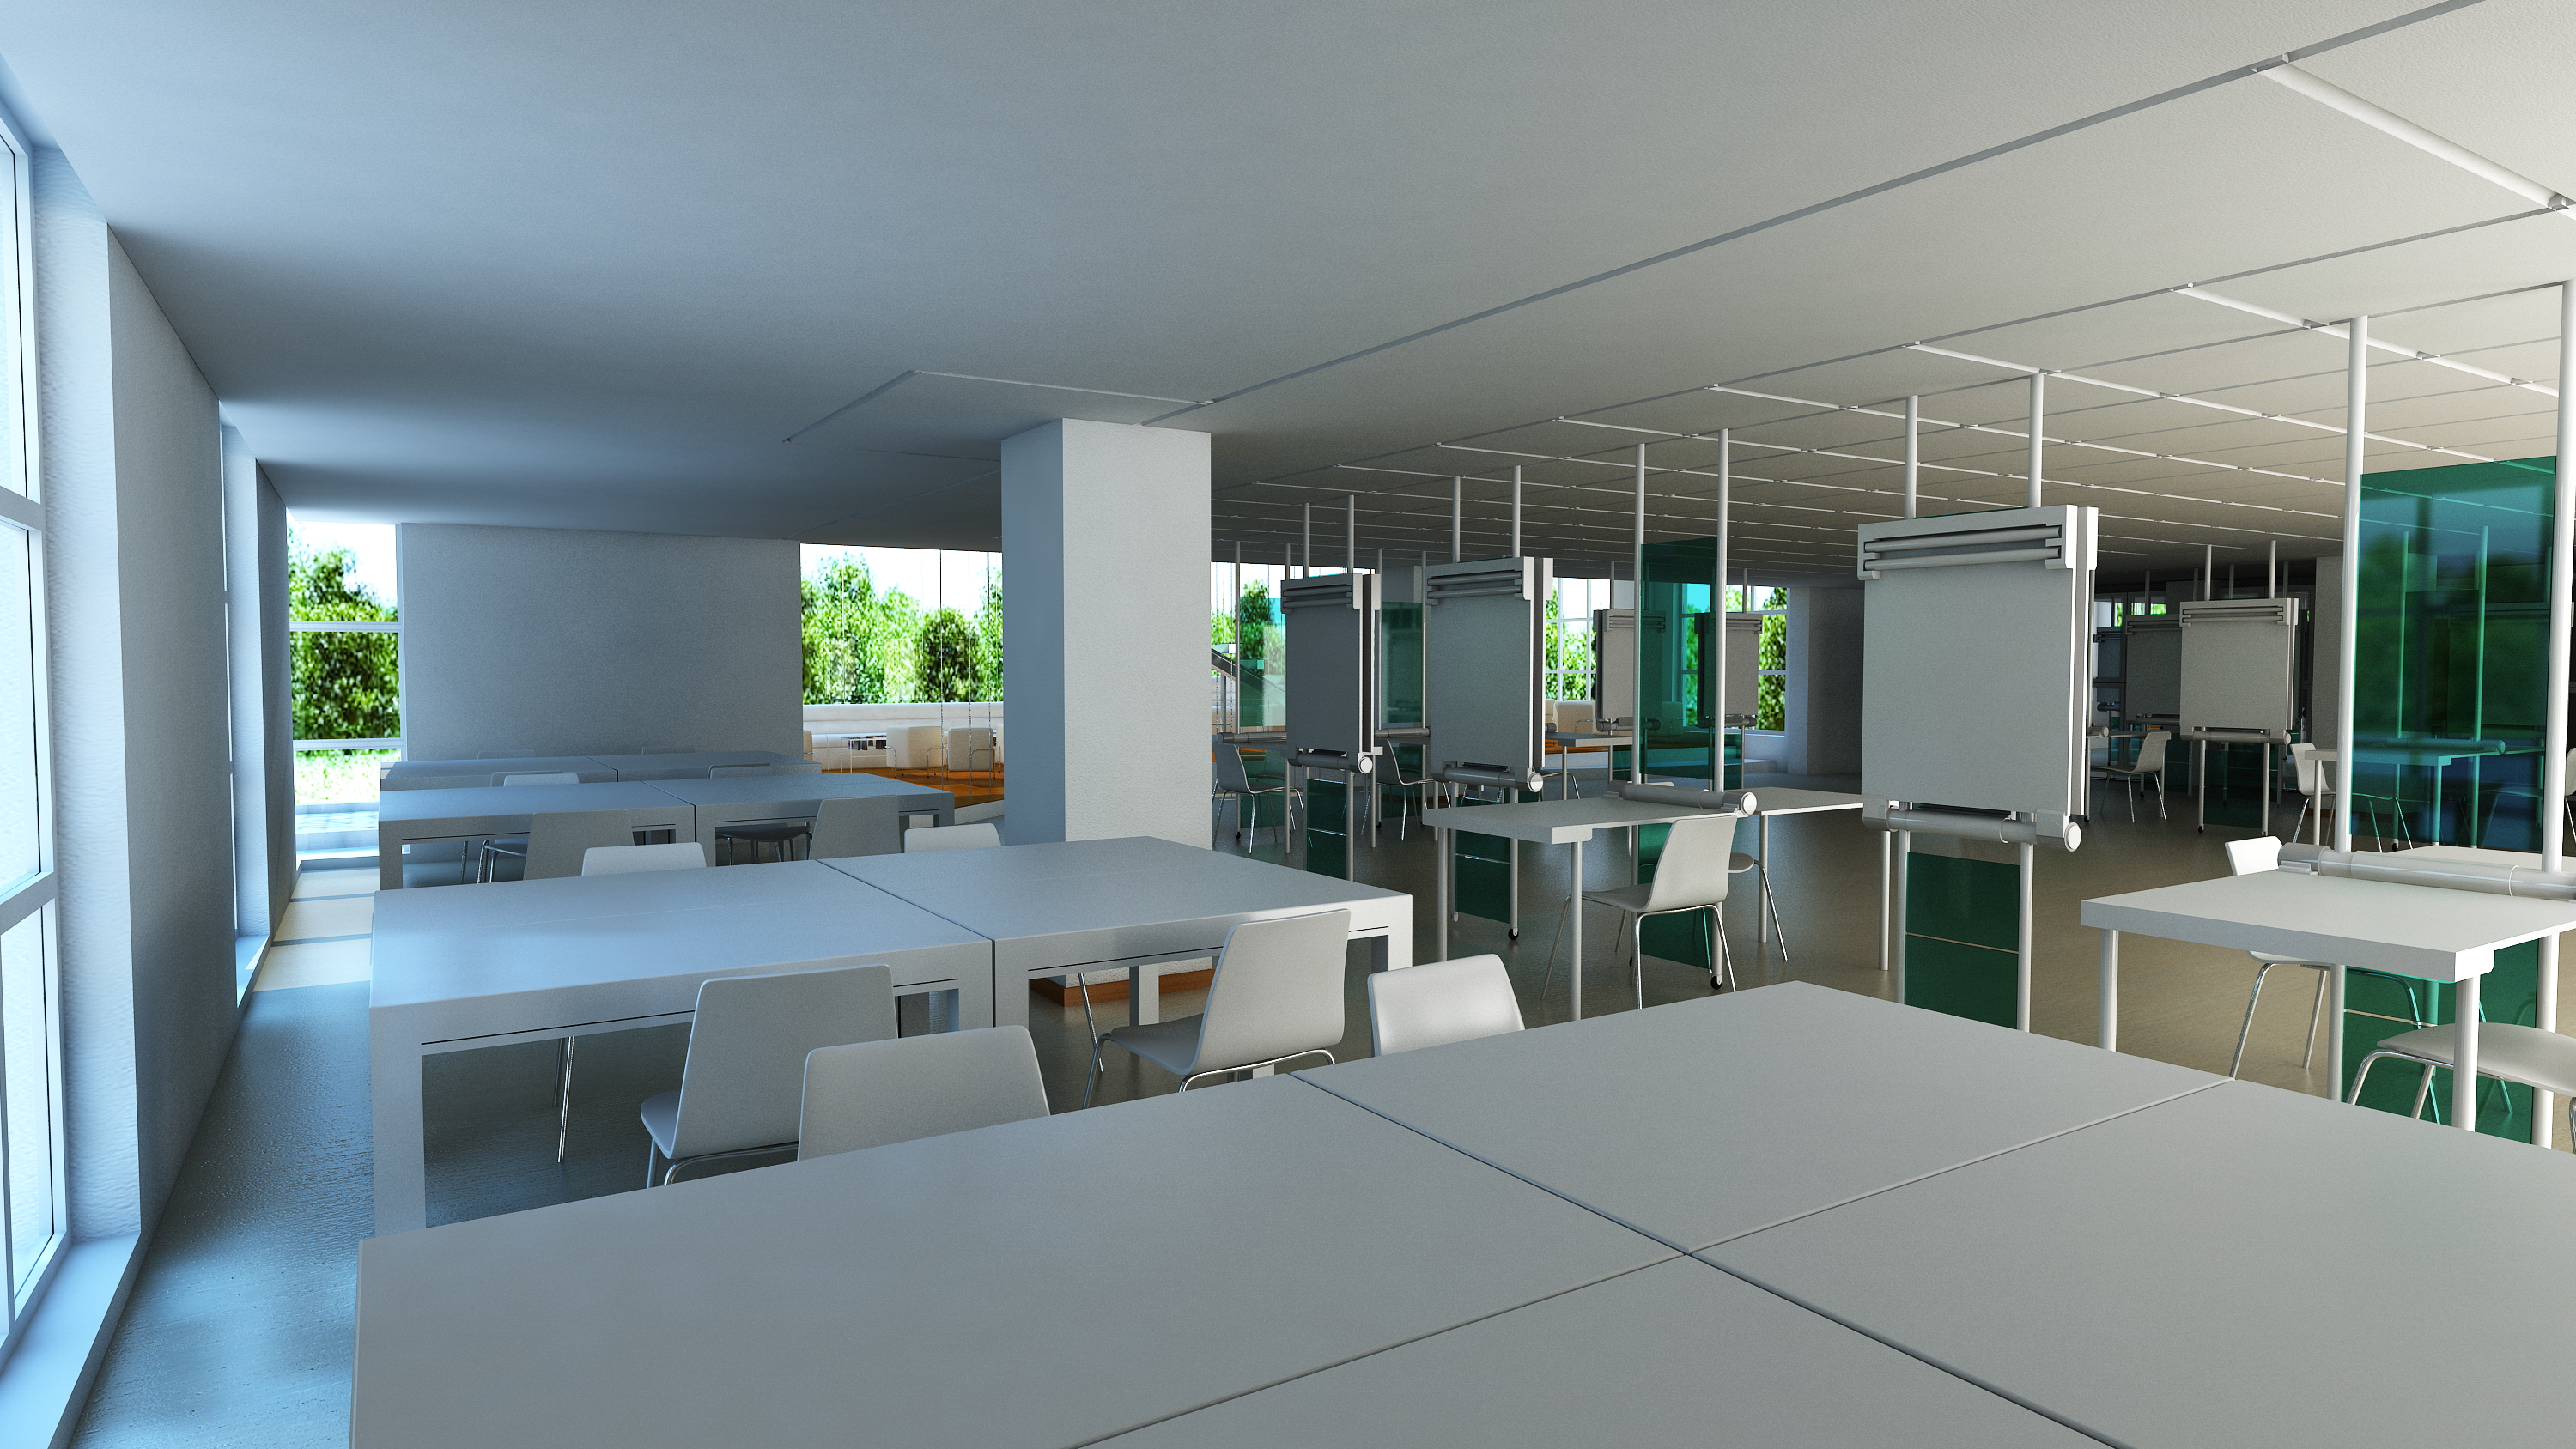 Interior renderings of an architecture studio stambol for Interior architecture studium